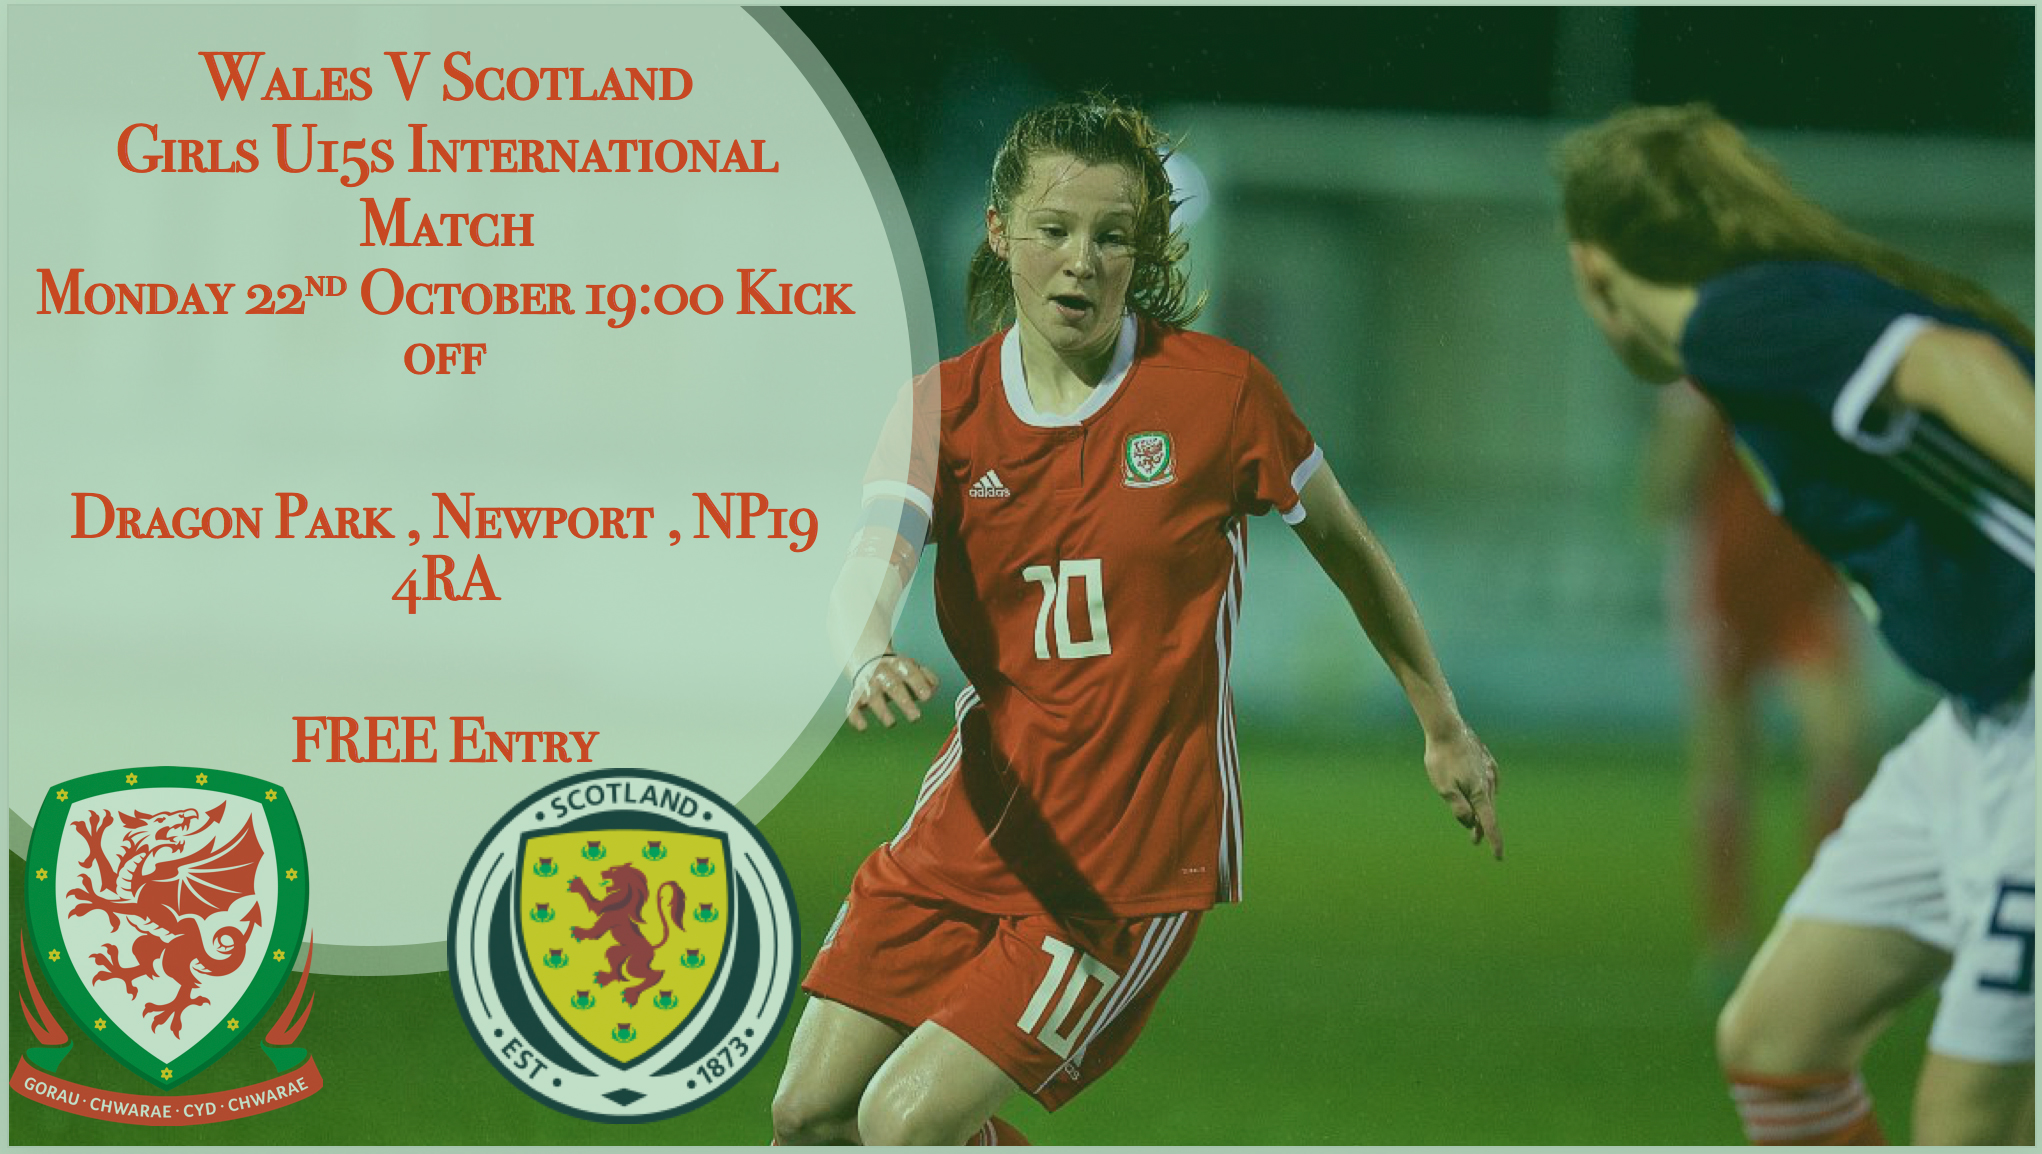 Here's the Wales U15 Girls' Squad to face Scotland